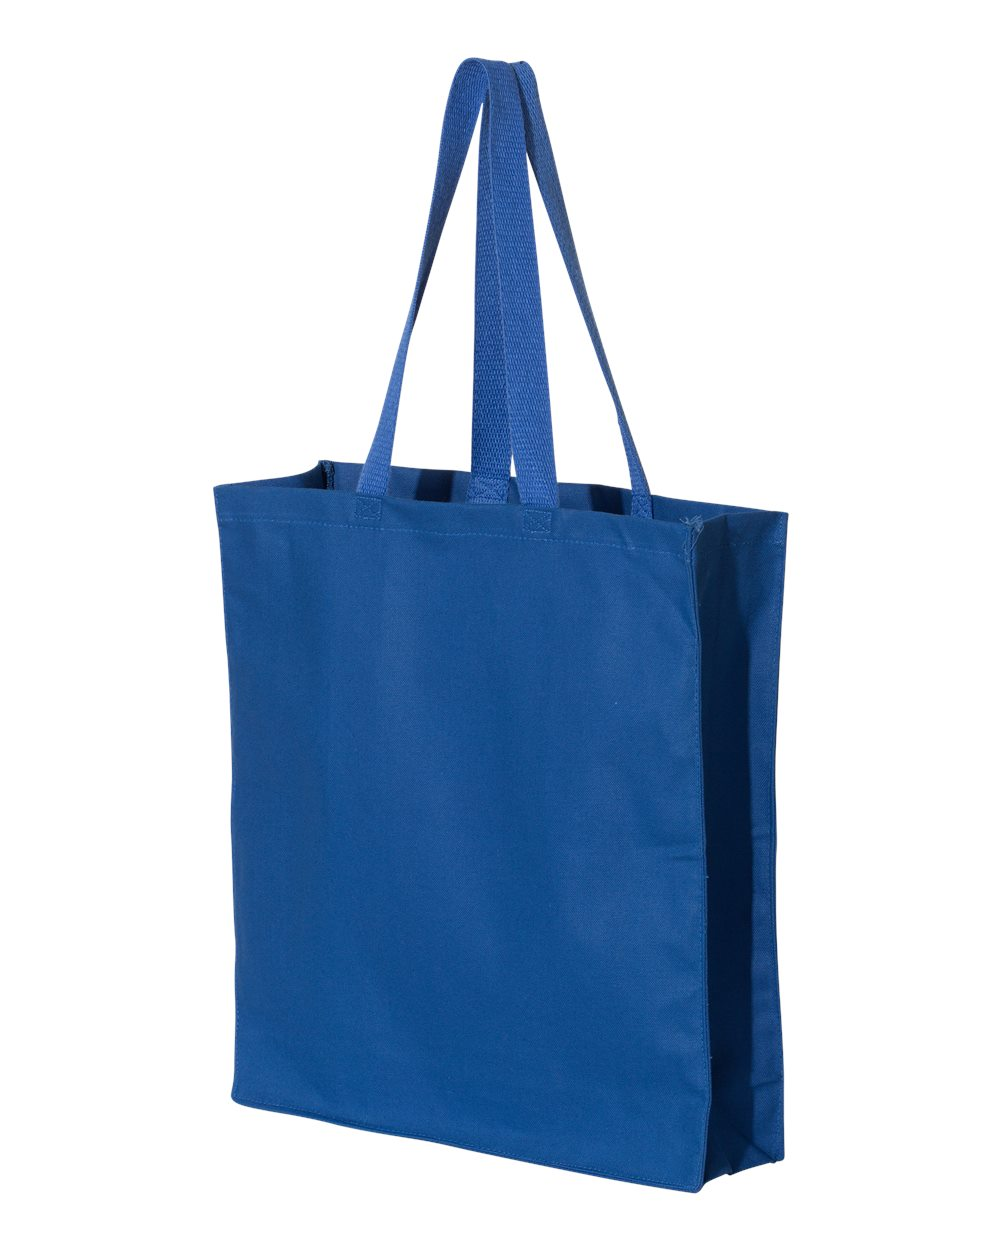 OAD OAD100 - Promotional Canvas Shopper Tote